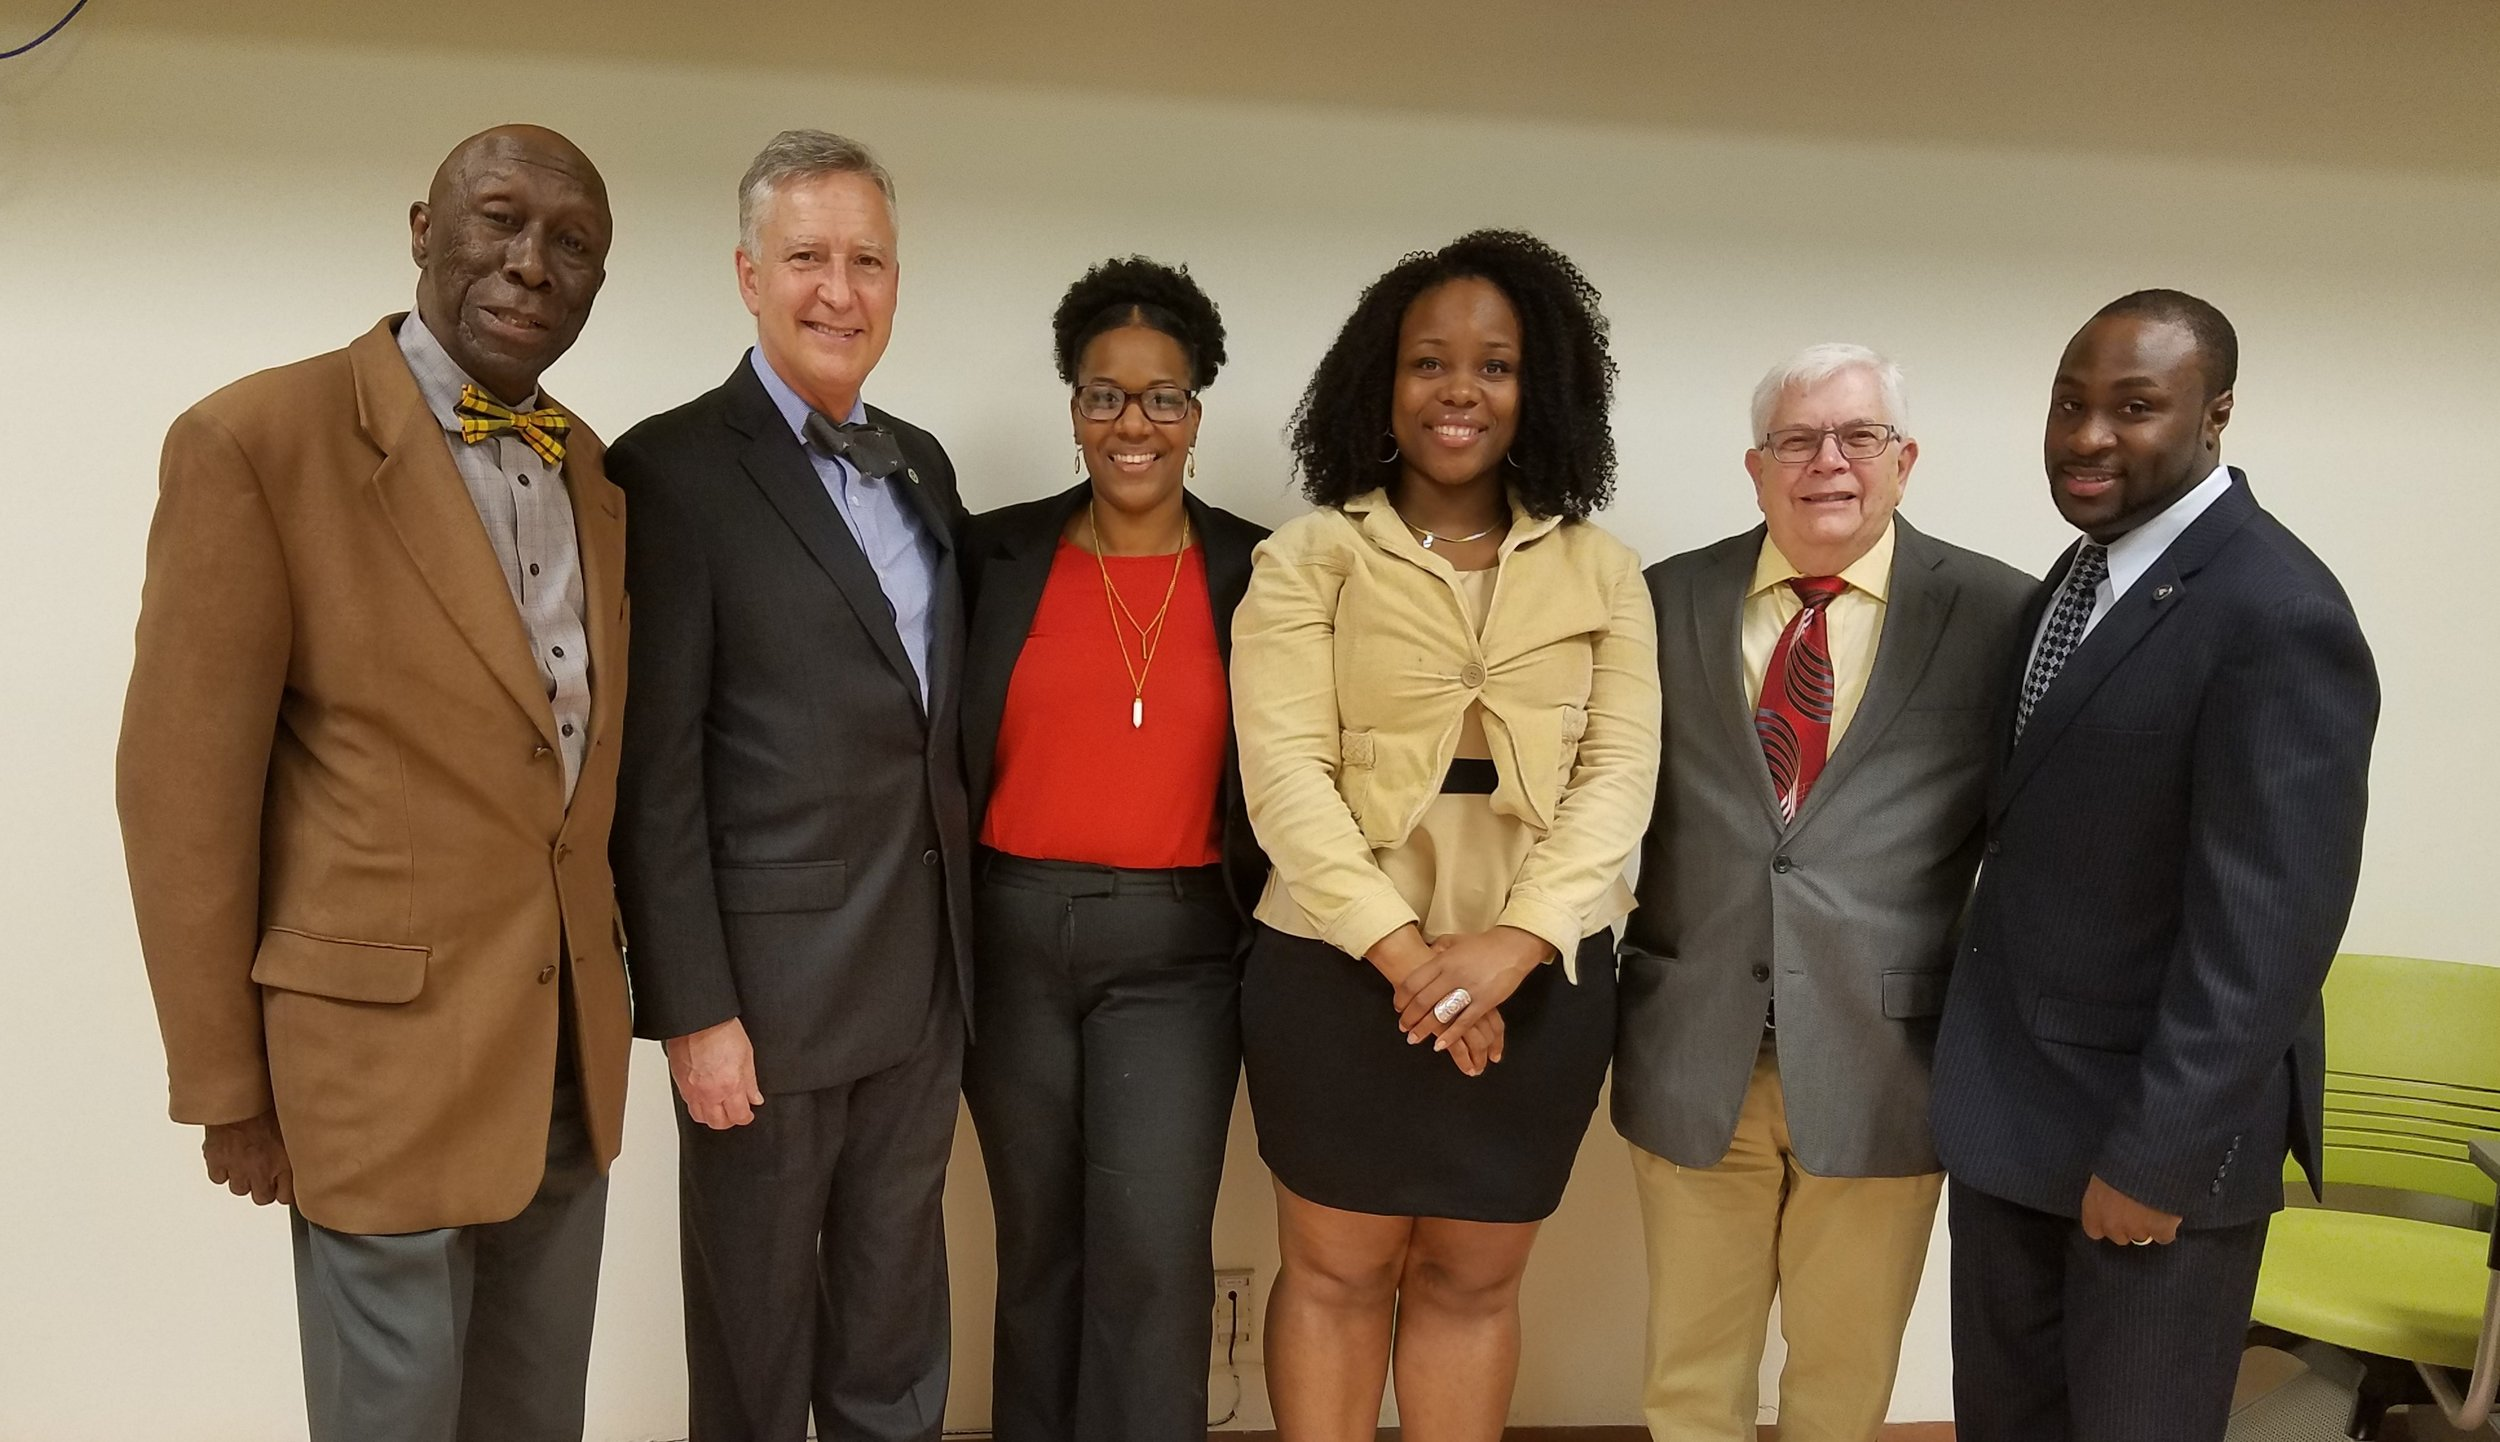 Brooklyn Chapter Leaders. From left to right: Franklyn Hayes, Anthony Edward Major, Diomaris Martinez, Joann Winter, Ron Semaria, and Adrian Duncan